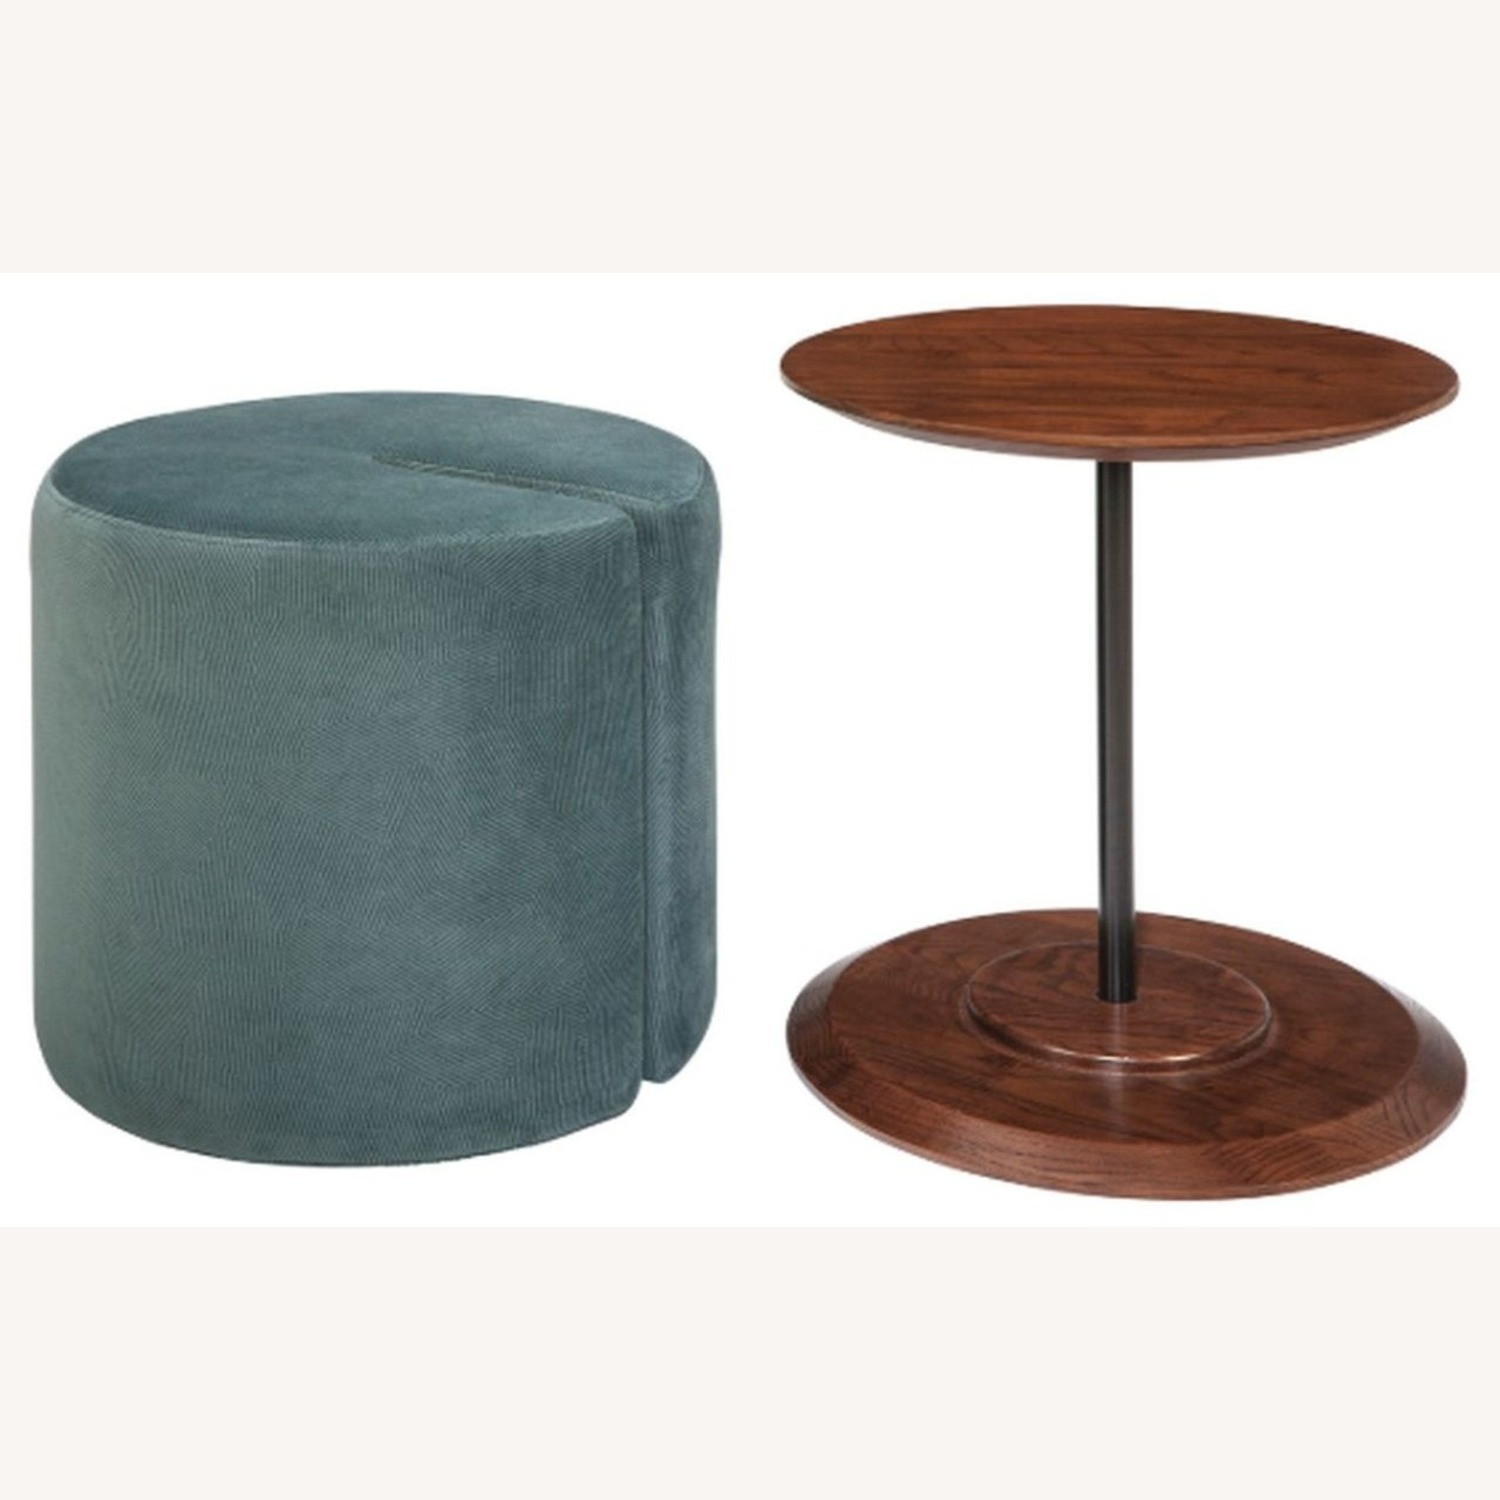 Accent Table W/ Ottoman In Teal Velvet Finish - image-2